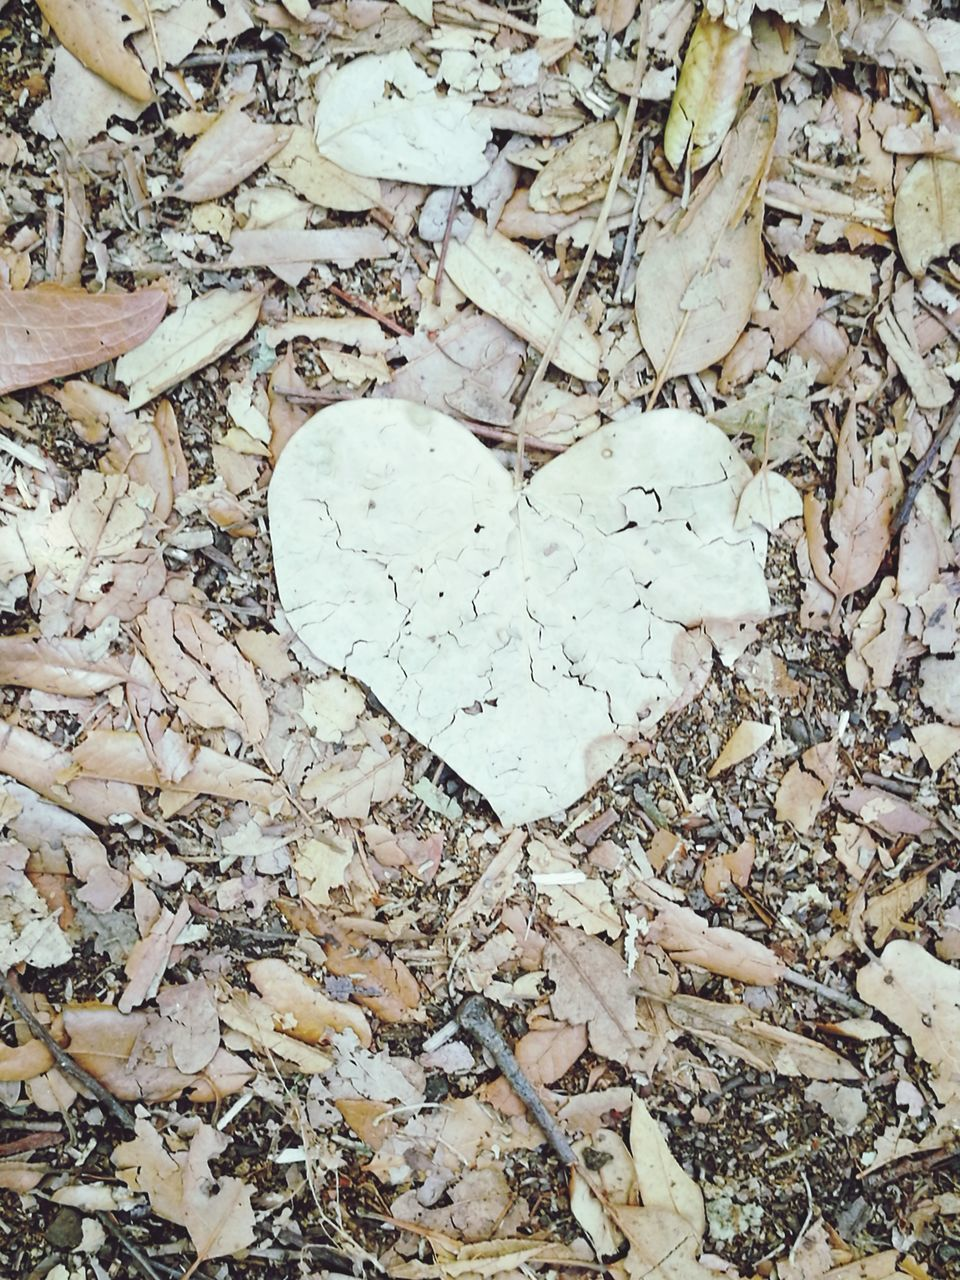 heart shape, love, leaf, full frame, day, no people, high angle view, outdoors, autumn, directly above, backgrounds, close-up, nature, fragility